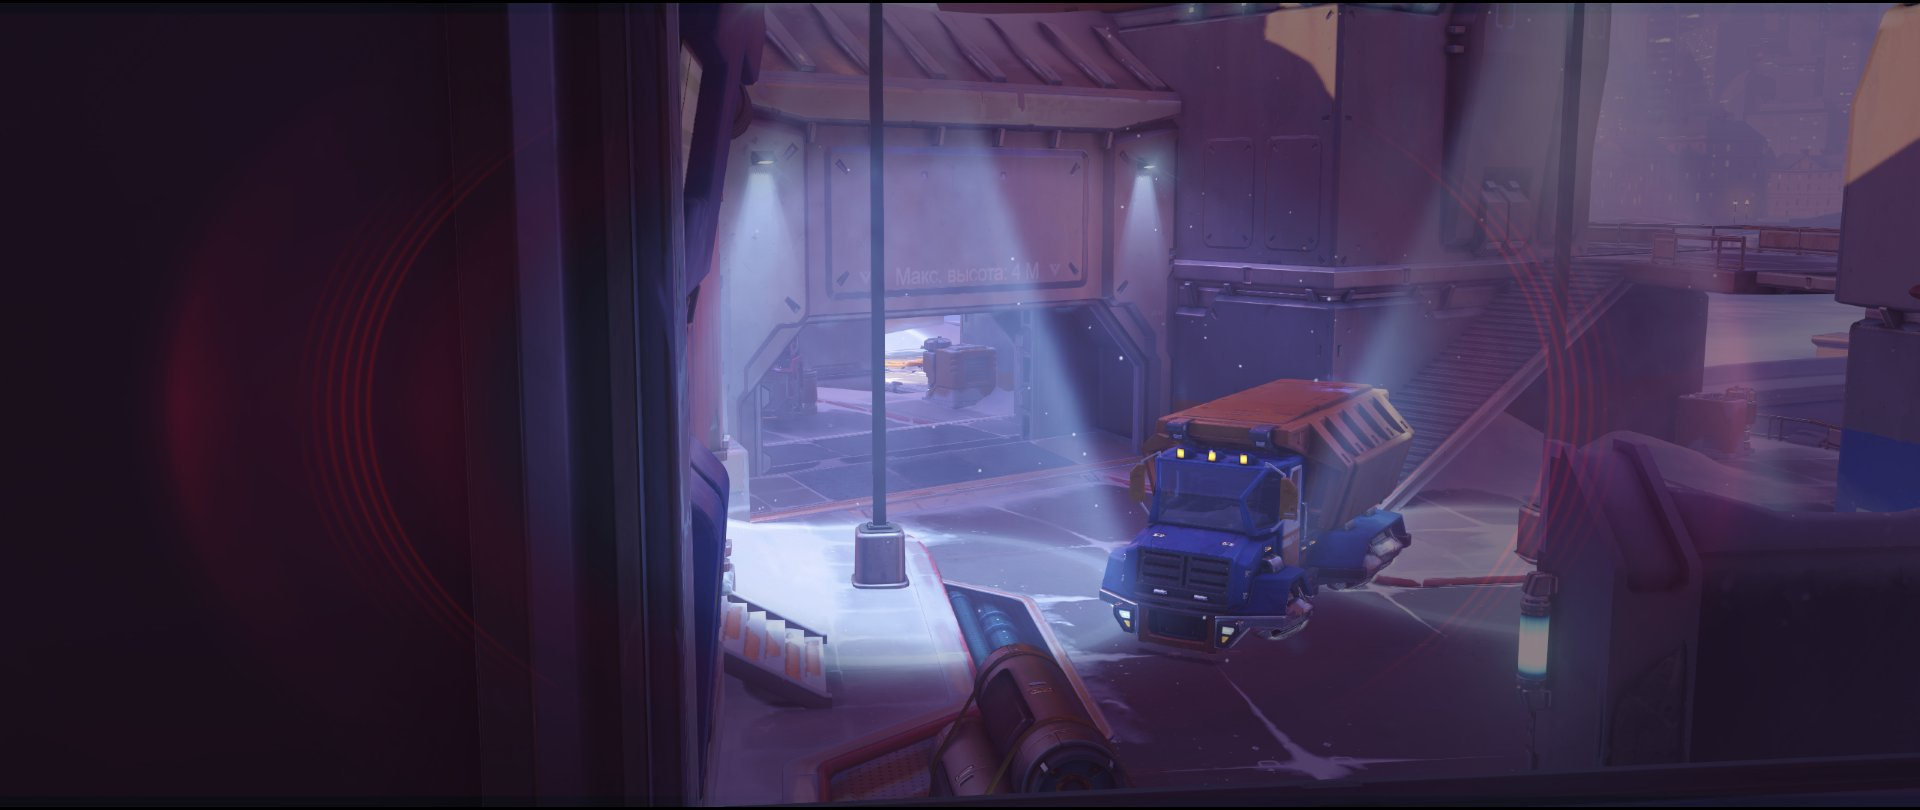 Turbnine view defense sniping spot Widowmaker Volskaya Industries Overwatch.jpg